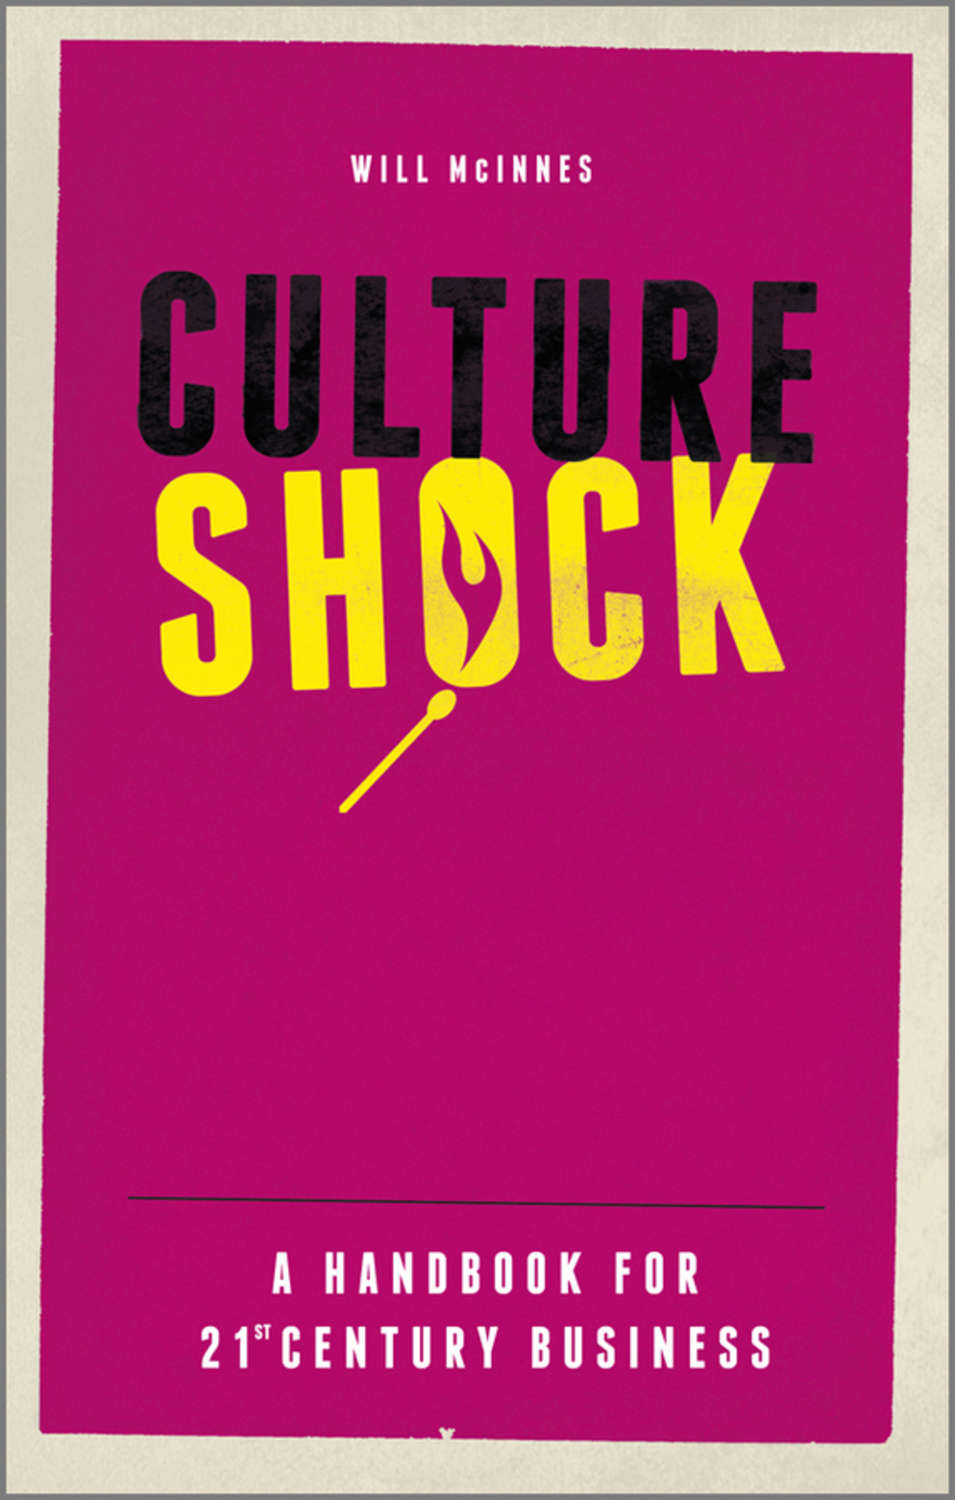 journal for culture shock Every expat knows about the negative effects of culture shock: feeling frustrated, lonely, homesick have you thought of positive effects of culture shock - refreshed perspectives - tips and tools to overcome homesickness i believe everyone in today's mobile society should have the right tools to overcome feeling homesick.